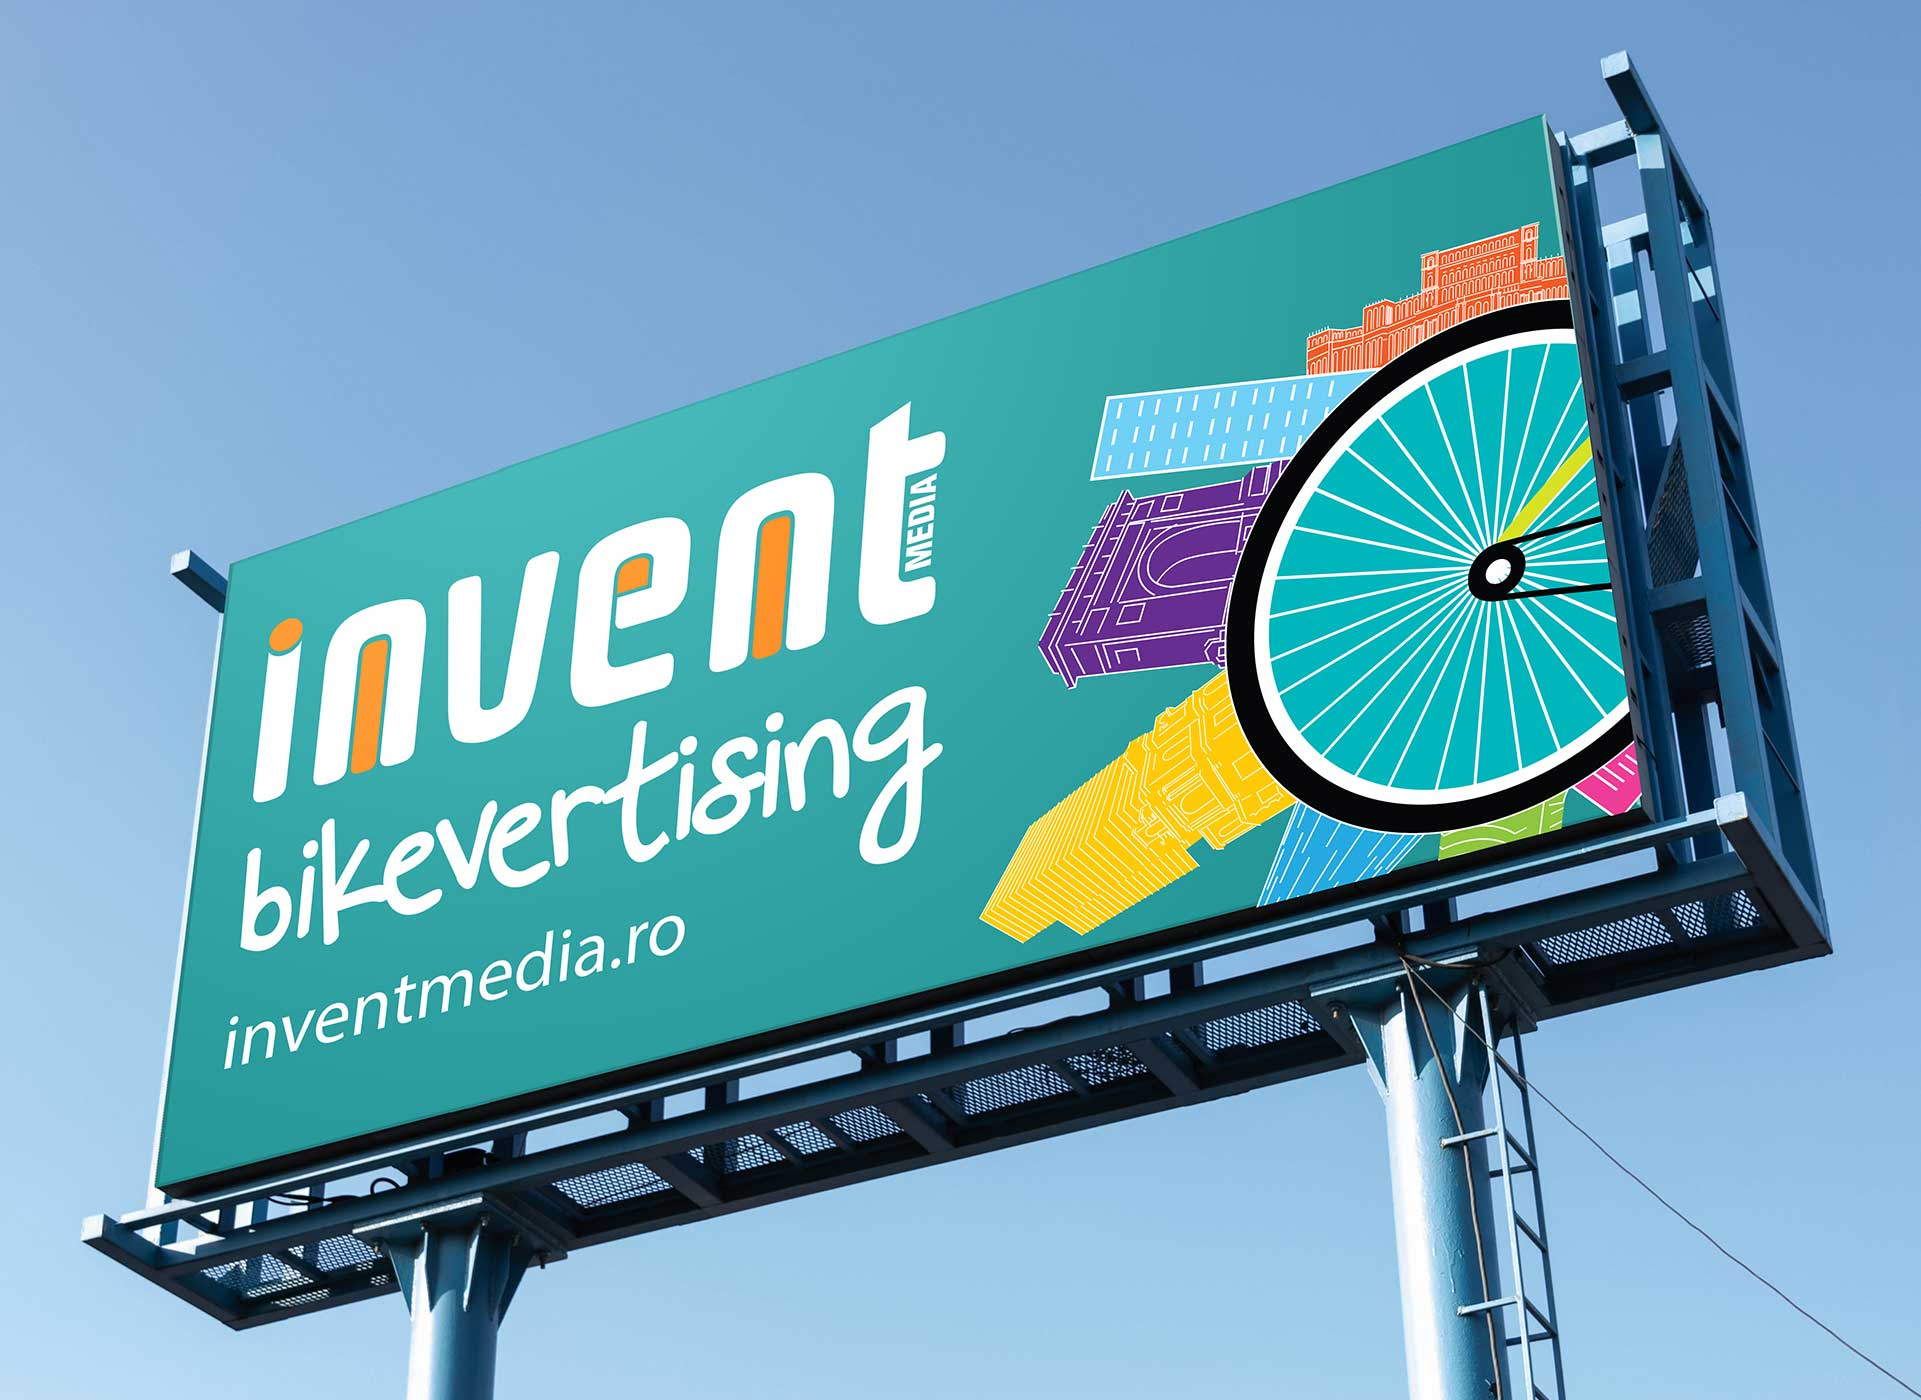 bikevertising outdoor banner